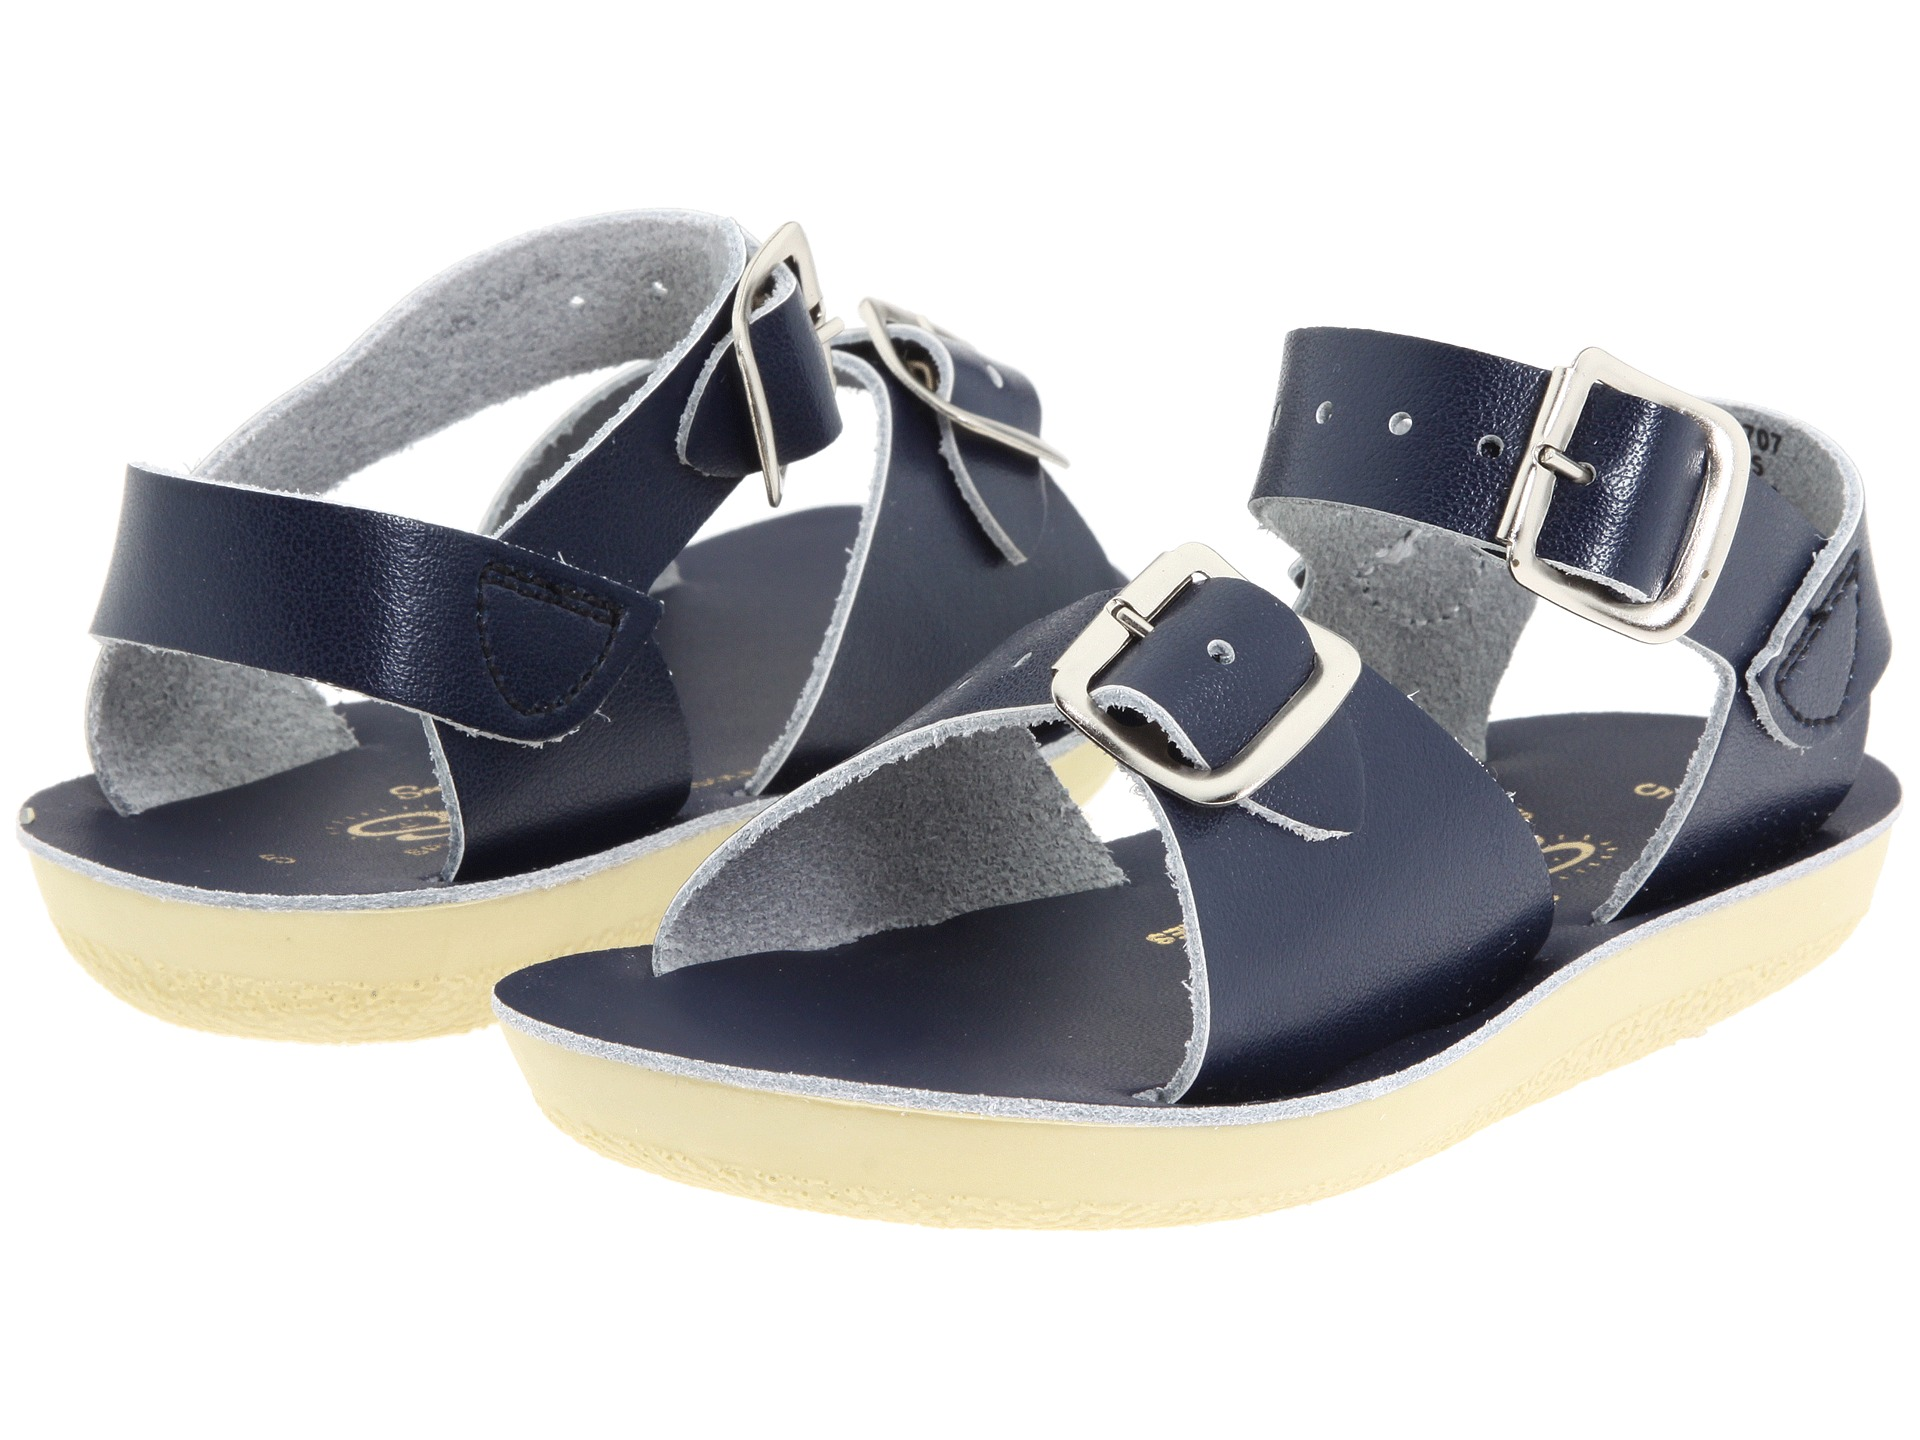 salt water sandal by hoy shoes sun san surfer toddler little kid blue navy free. Black Bedroom Furniture Sets. Home Design Ideas